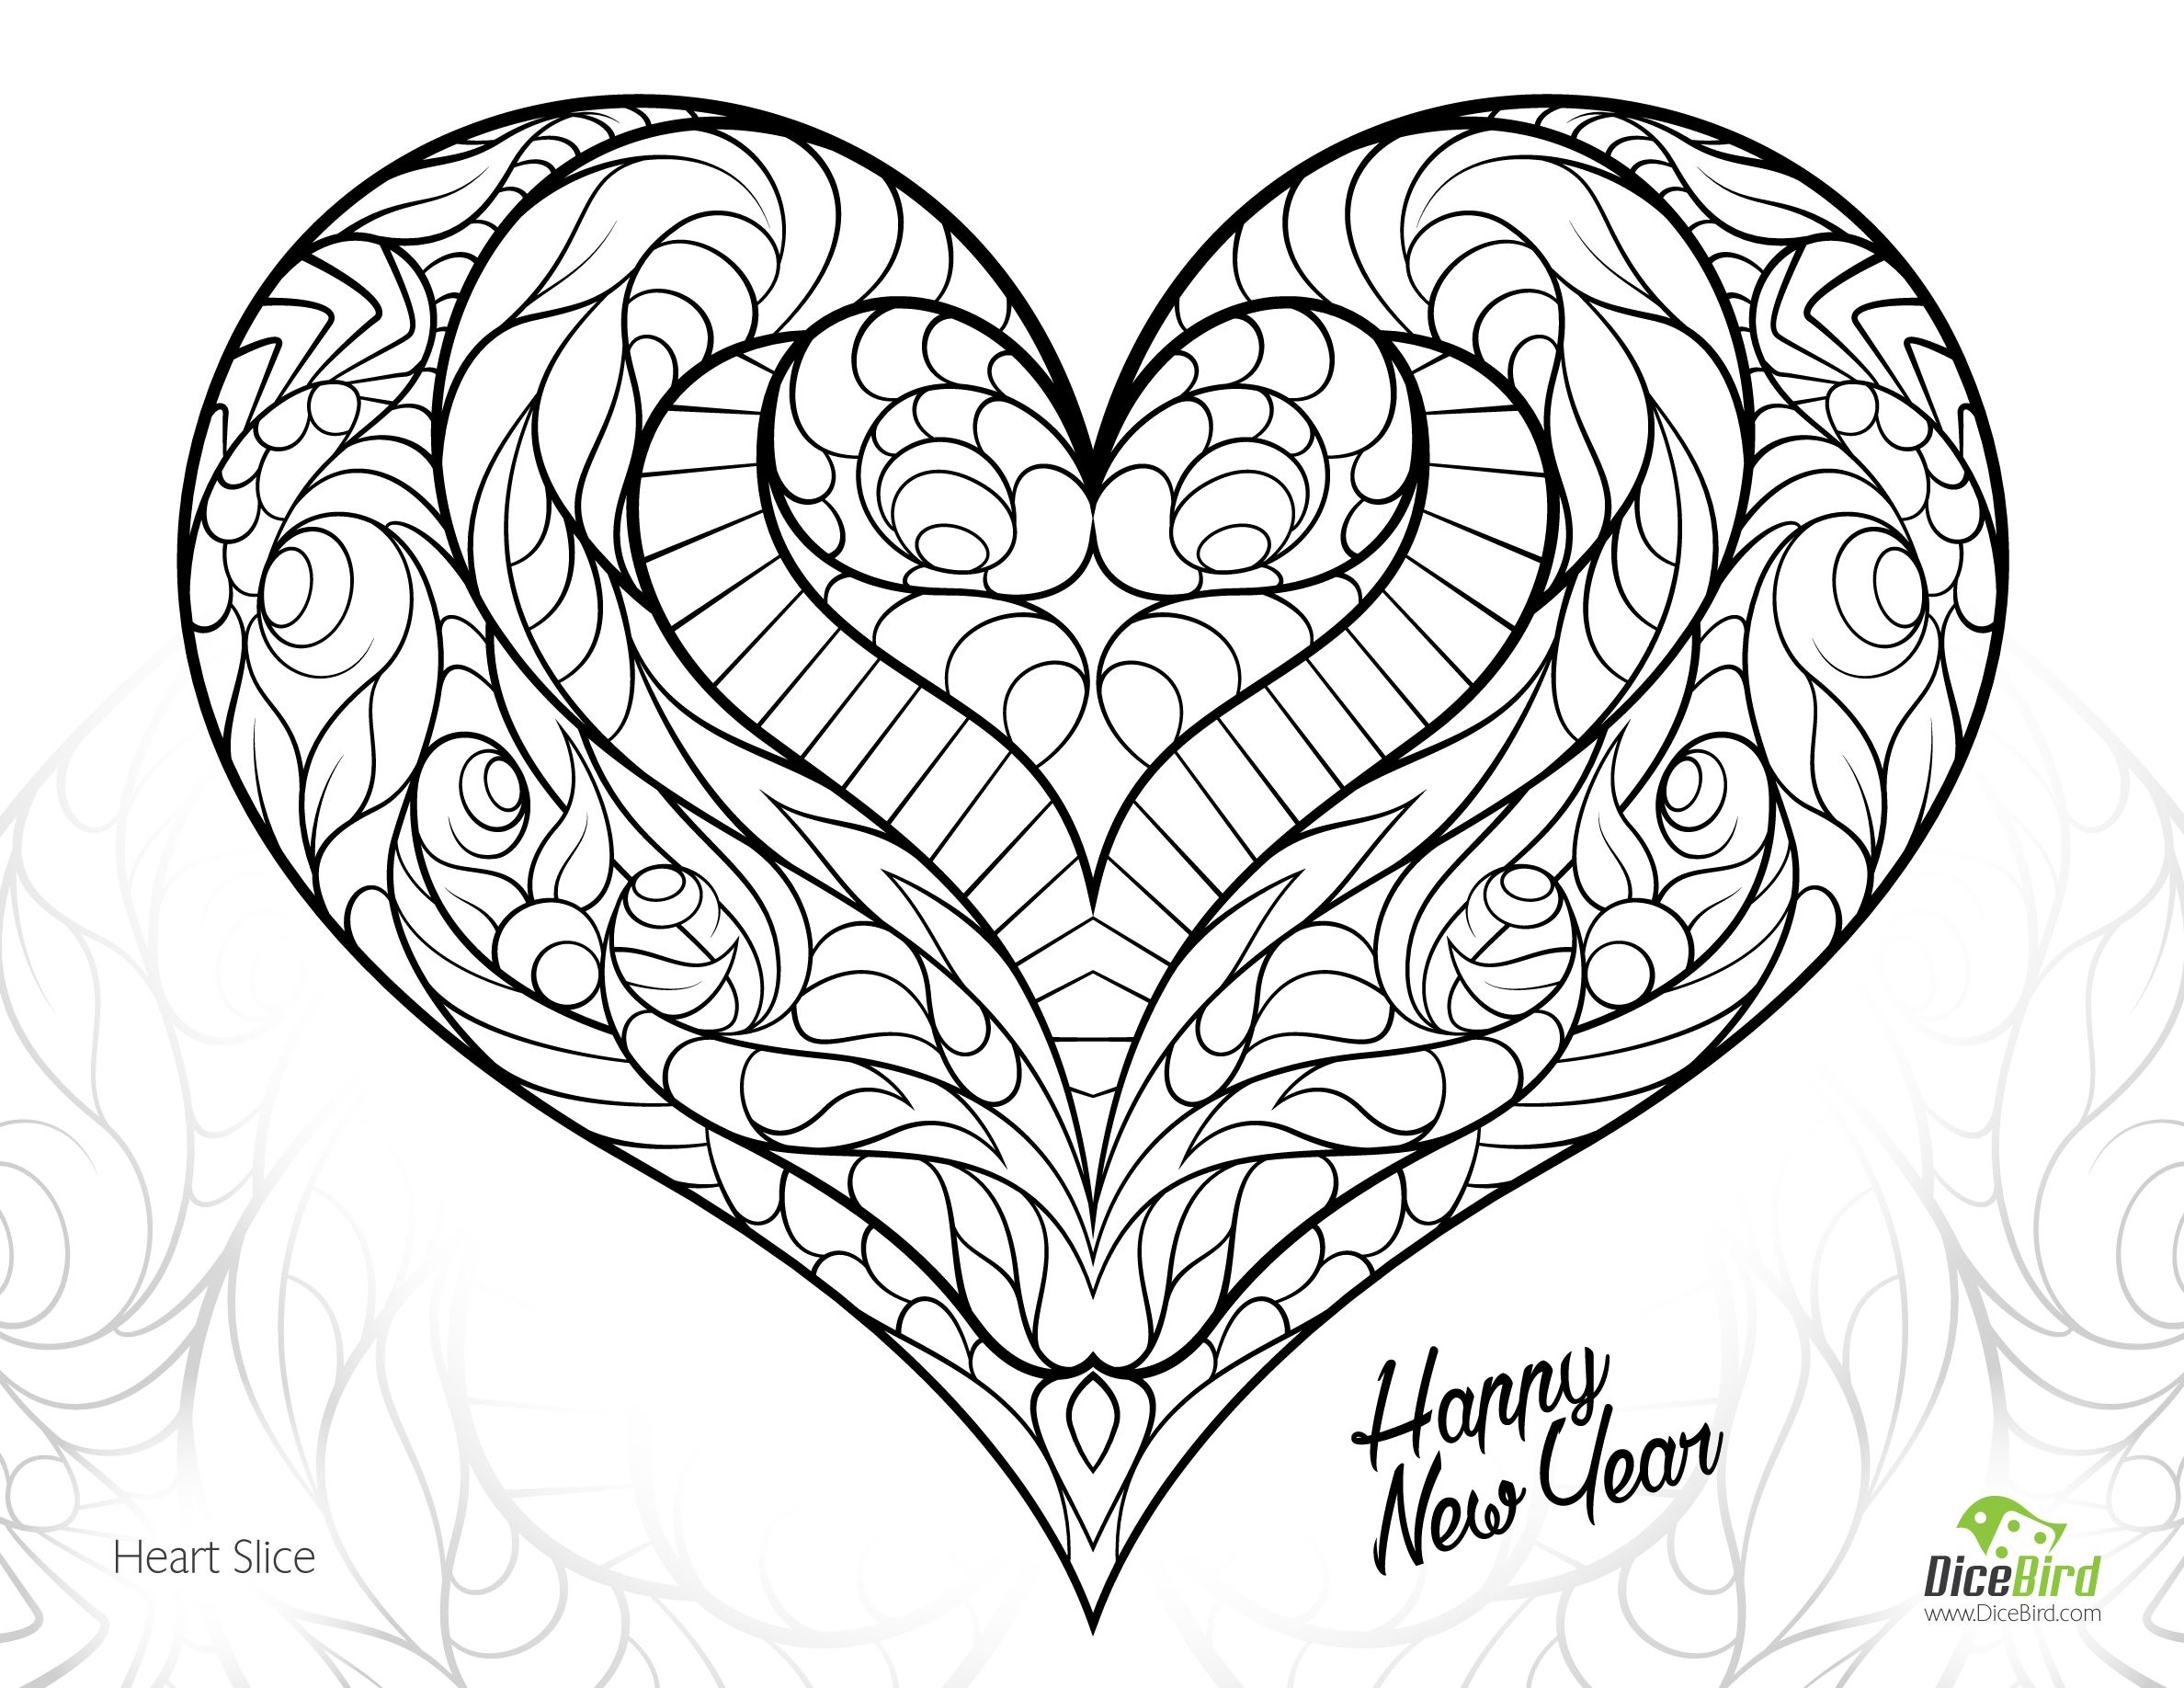 heart slice free adult coloring pages printable  love